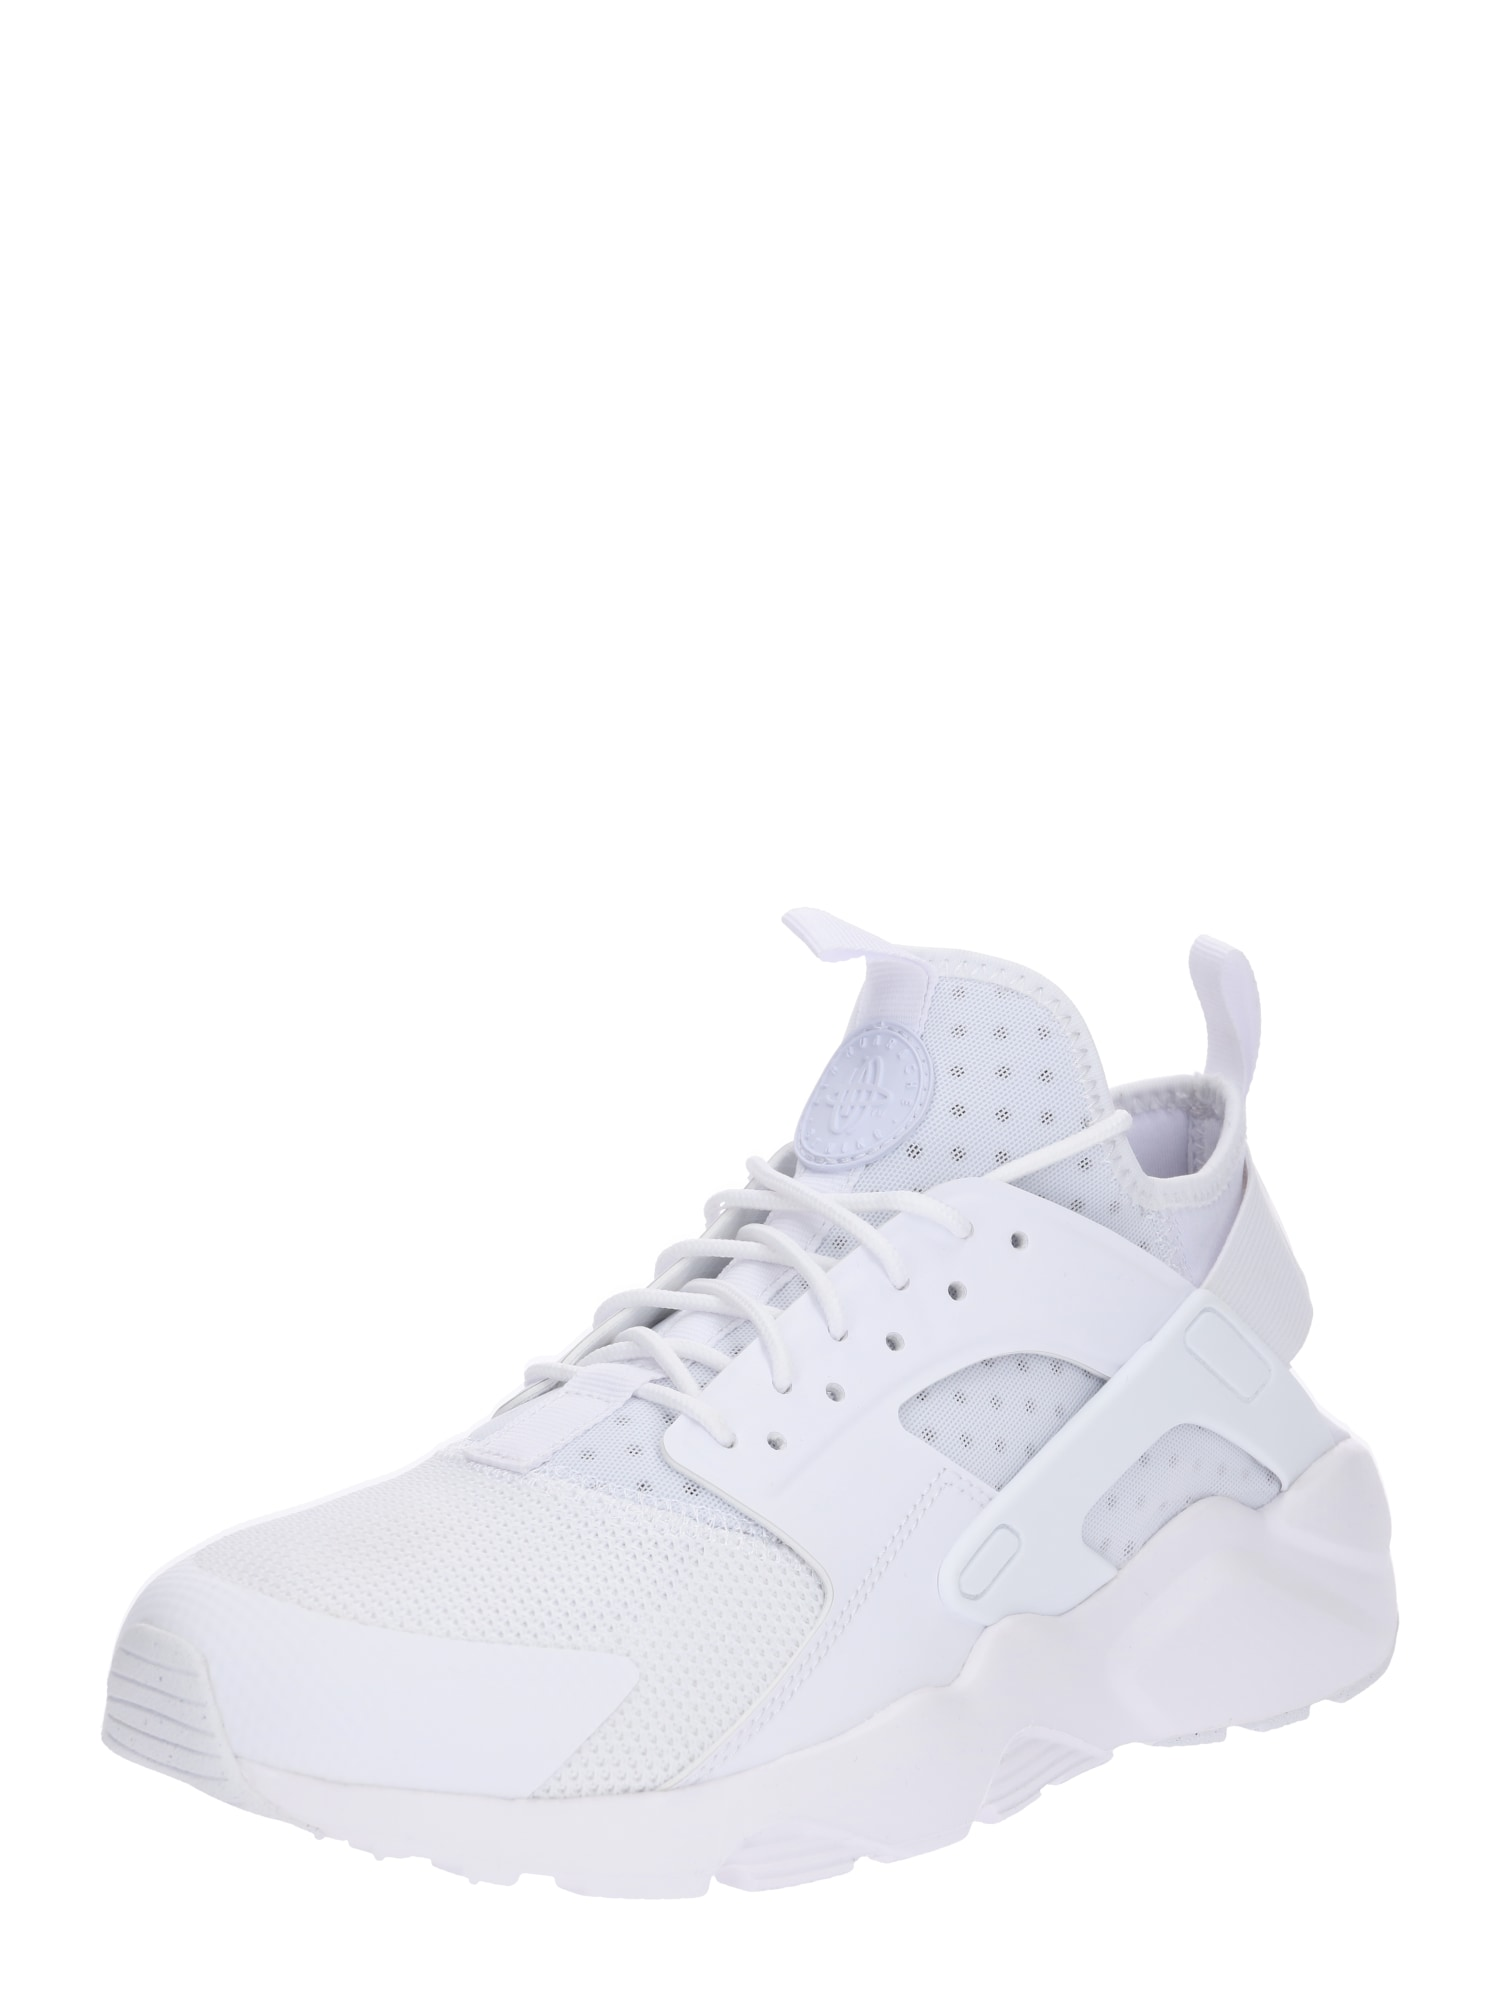 Nike Sportswear, Heren Sneakers laag 'Air Huarache Run Ultra', wit